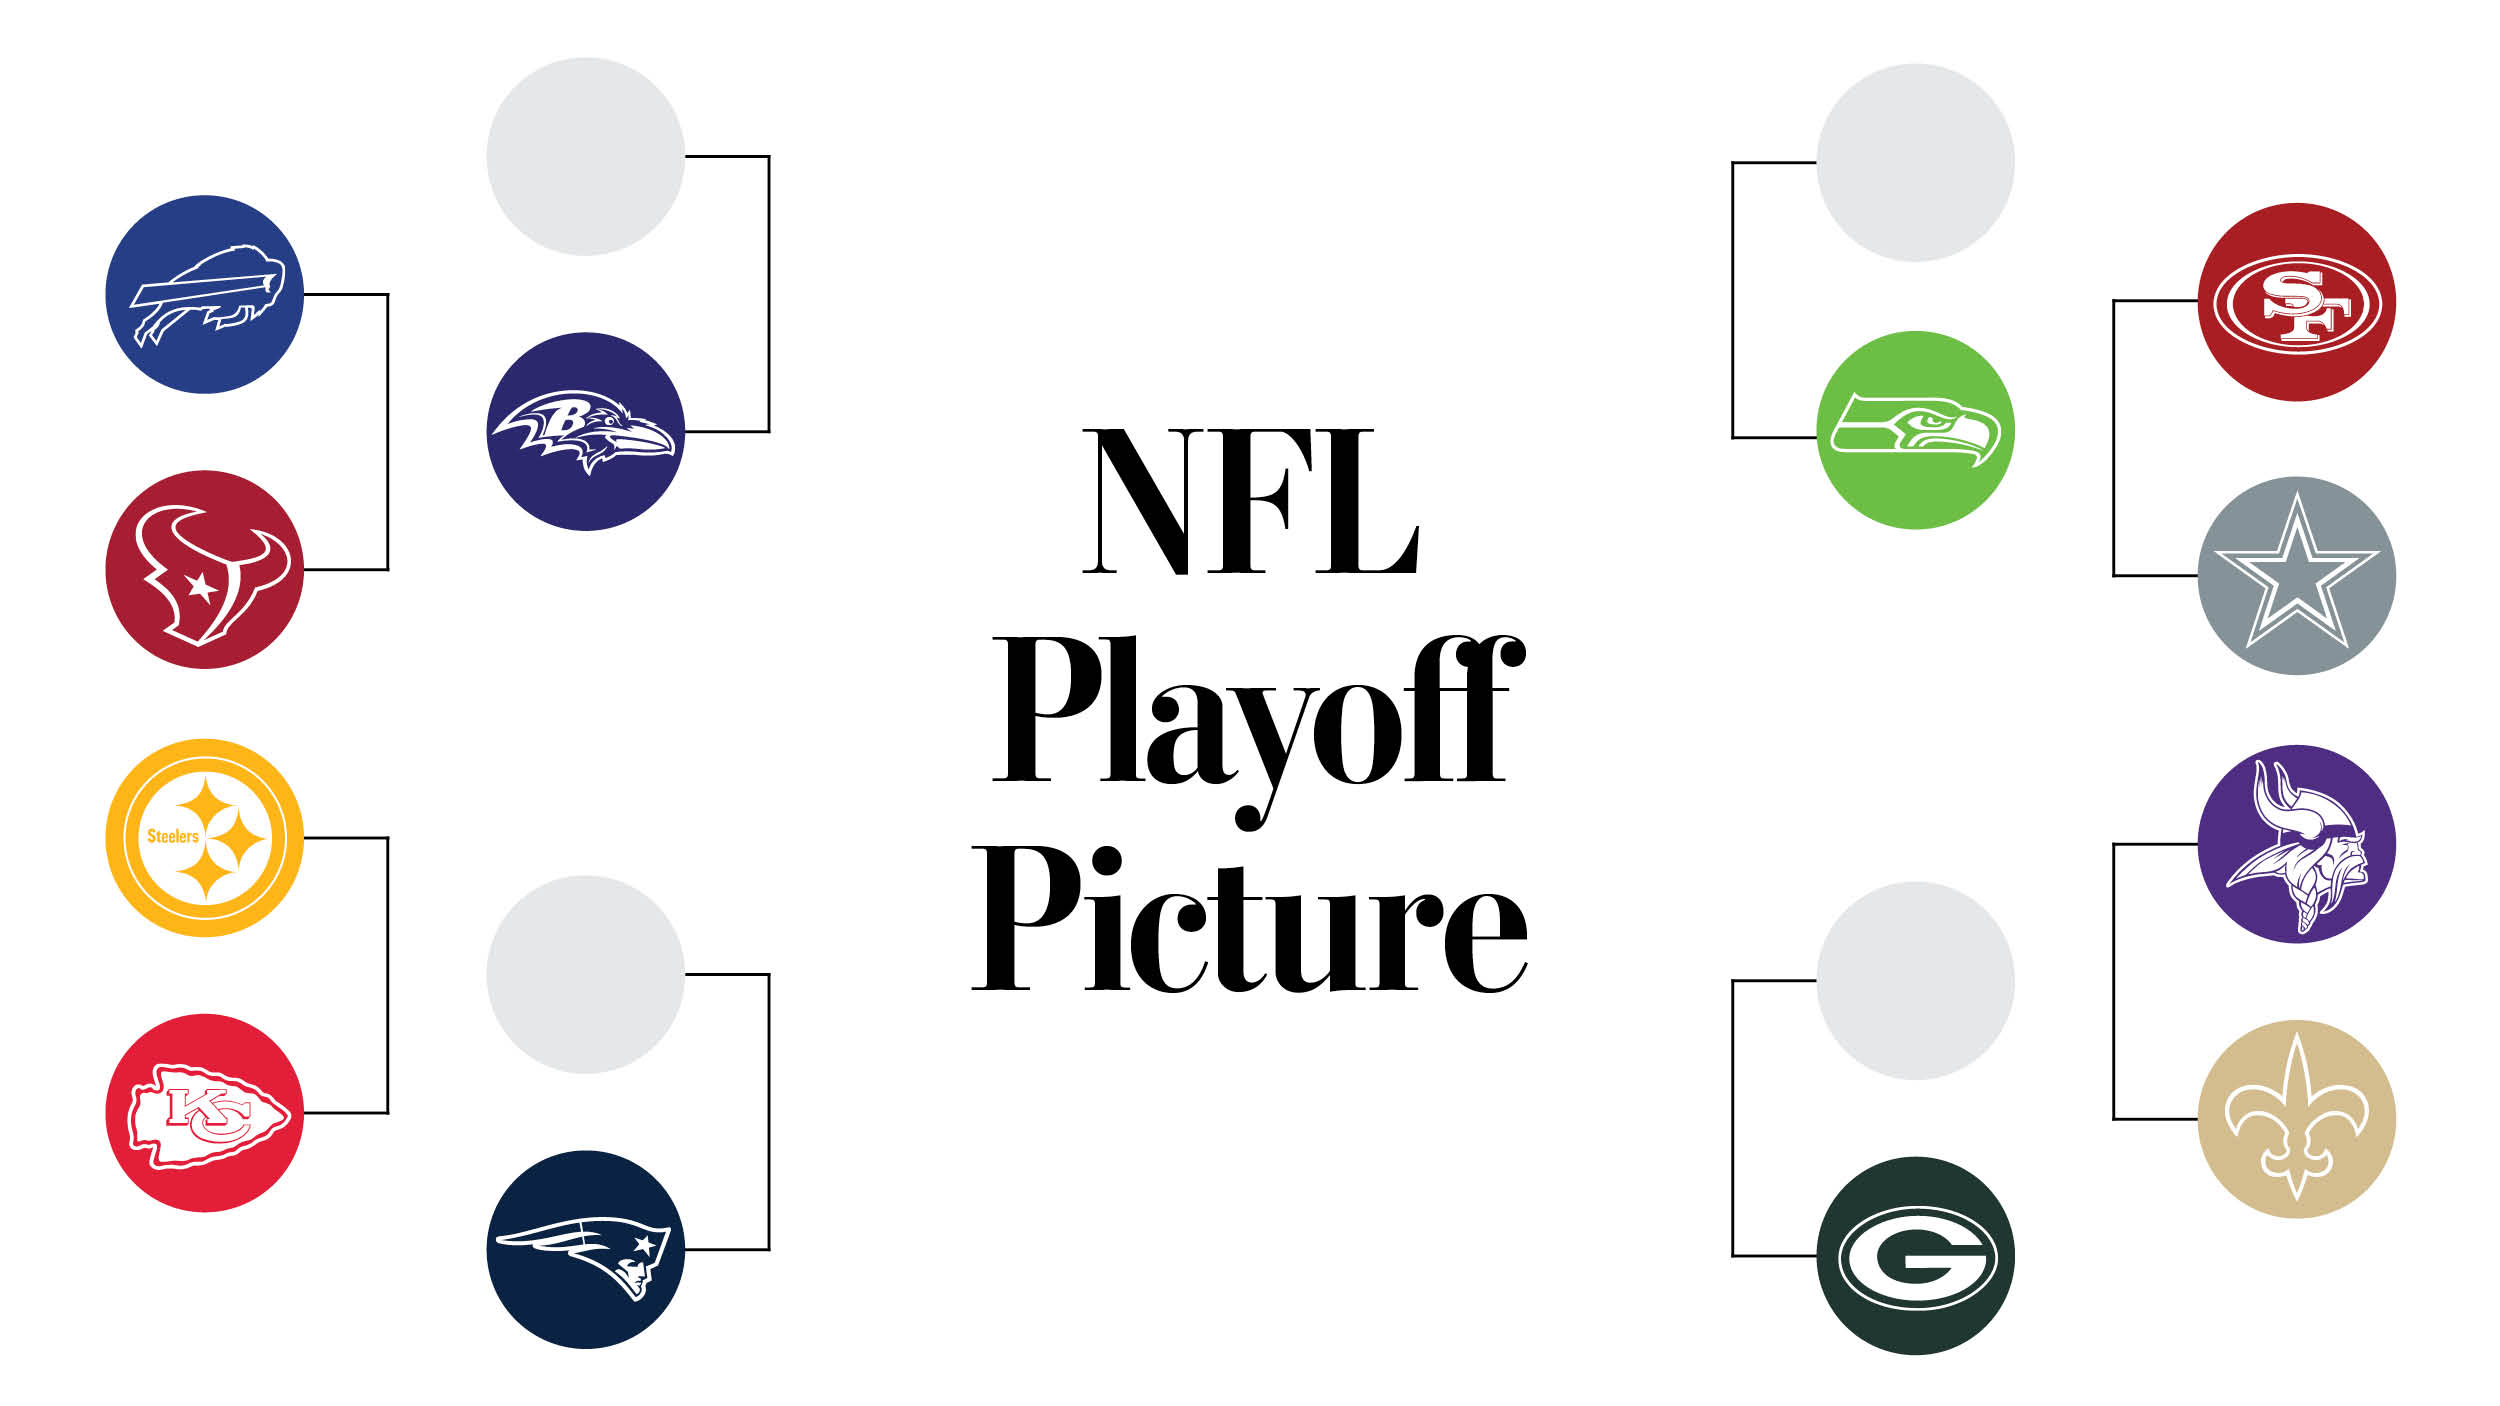 It's just a photo of Nfl Playoff Brackets Printable with divisional round